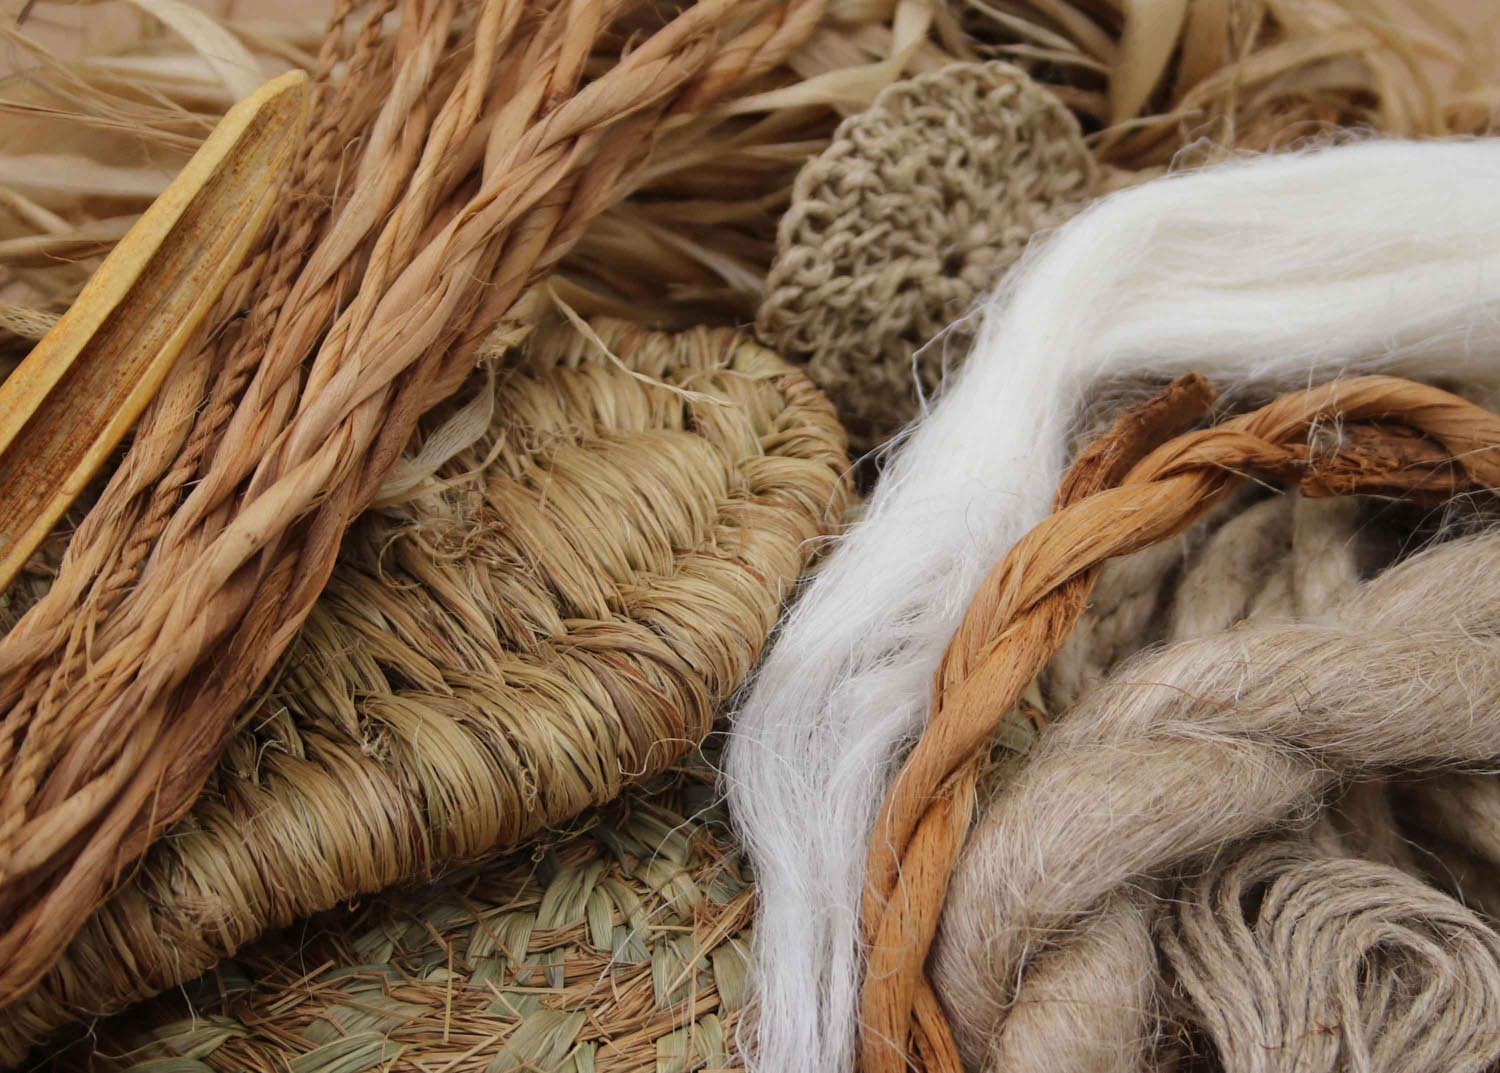 Plying and Cordage course, Leaf Trading Post